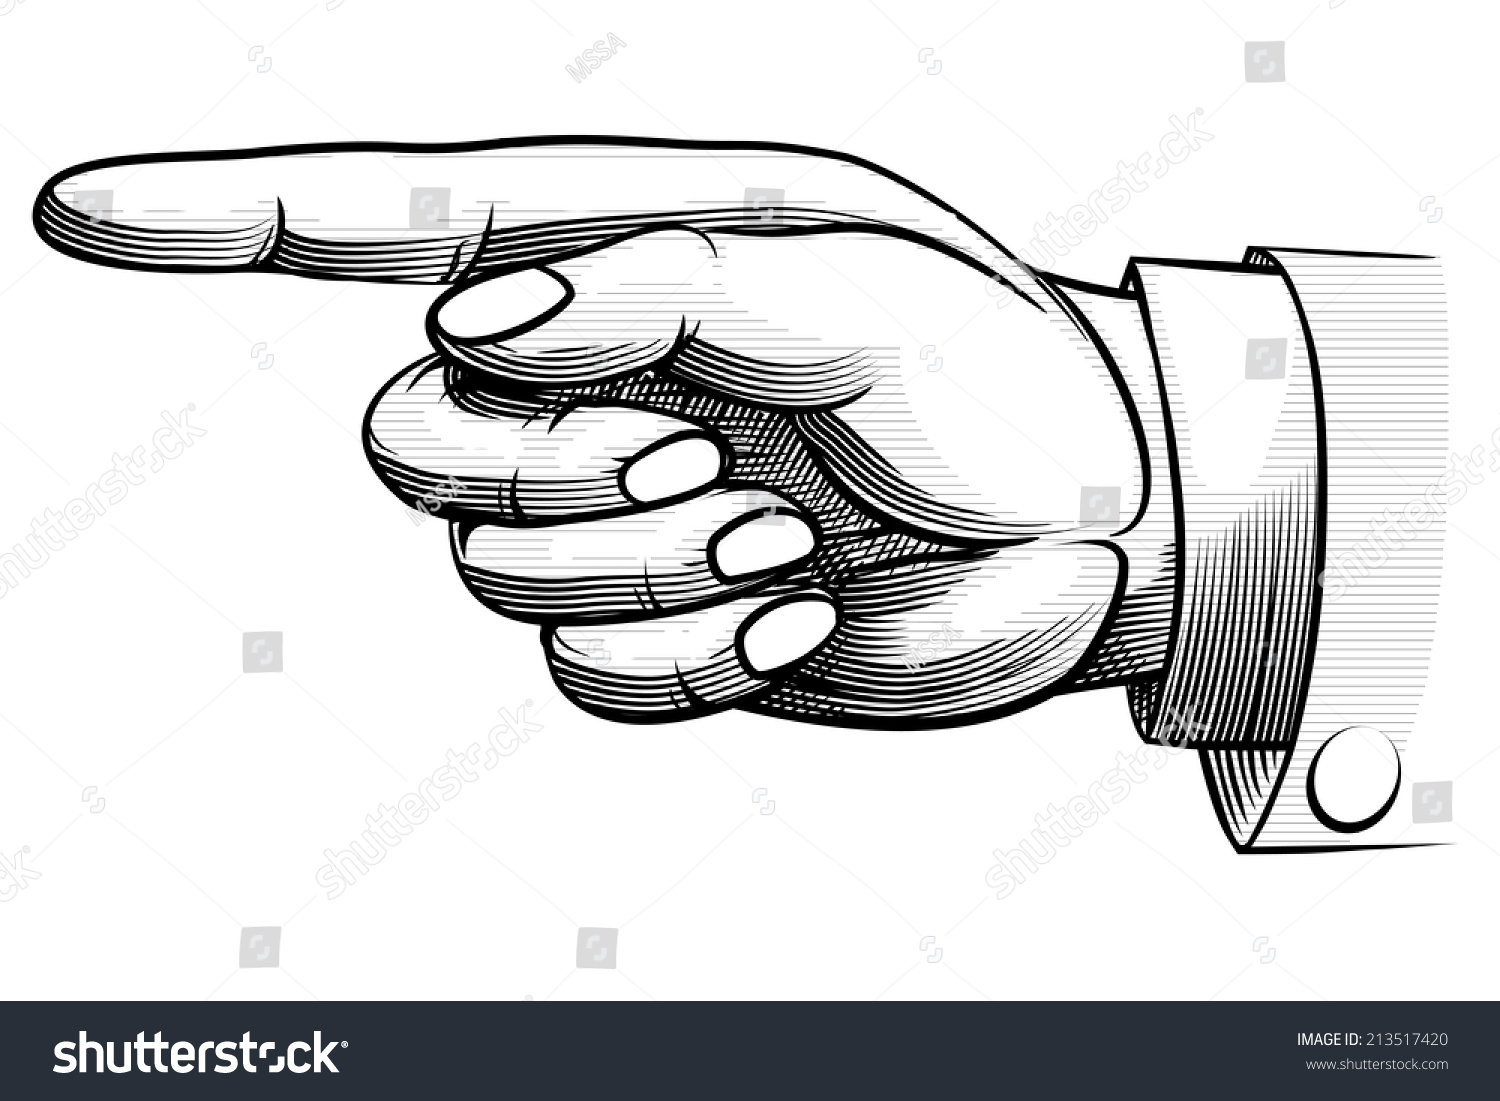 how to draw a hand pointing up